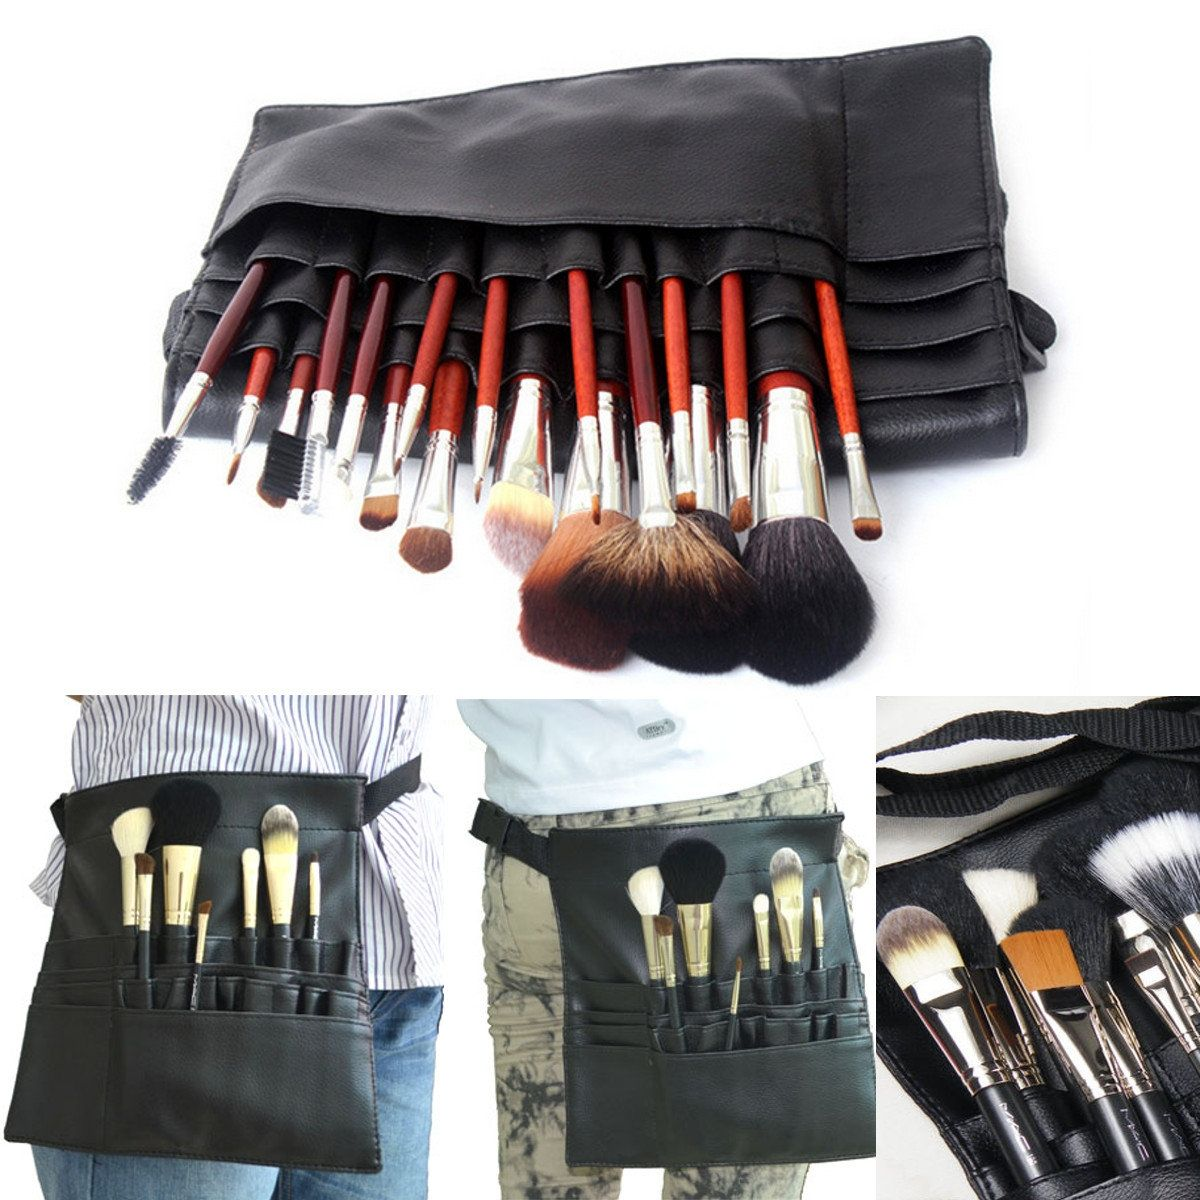 US21.78 22 Pockets Professional Makeup Brushes Apron